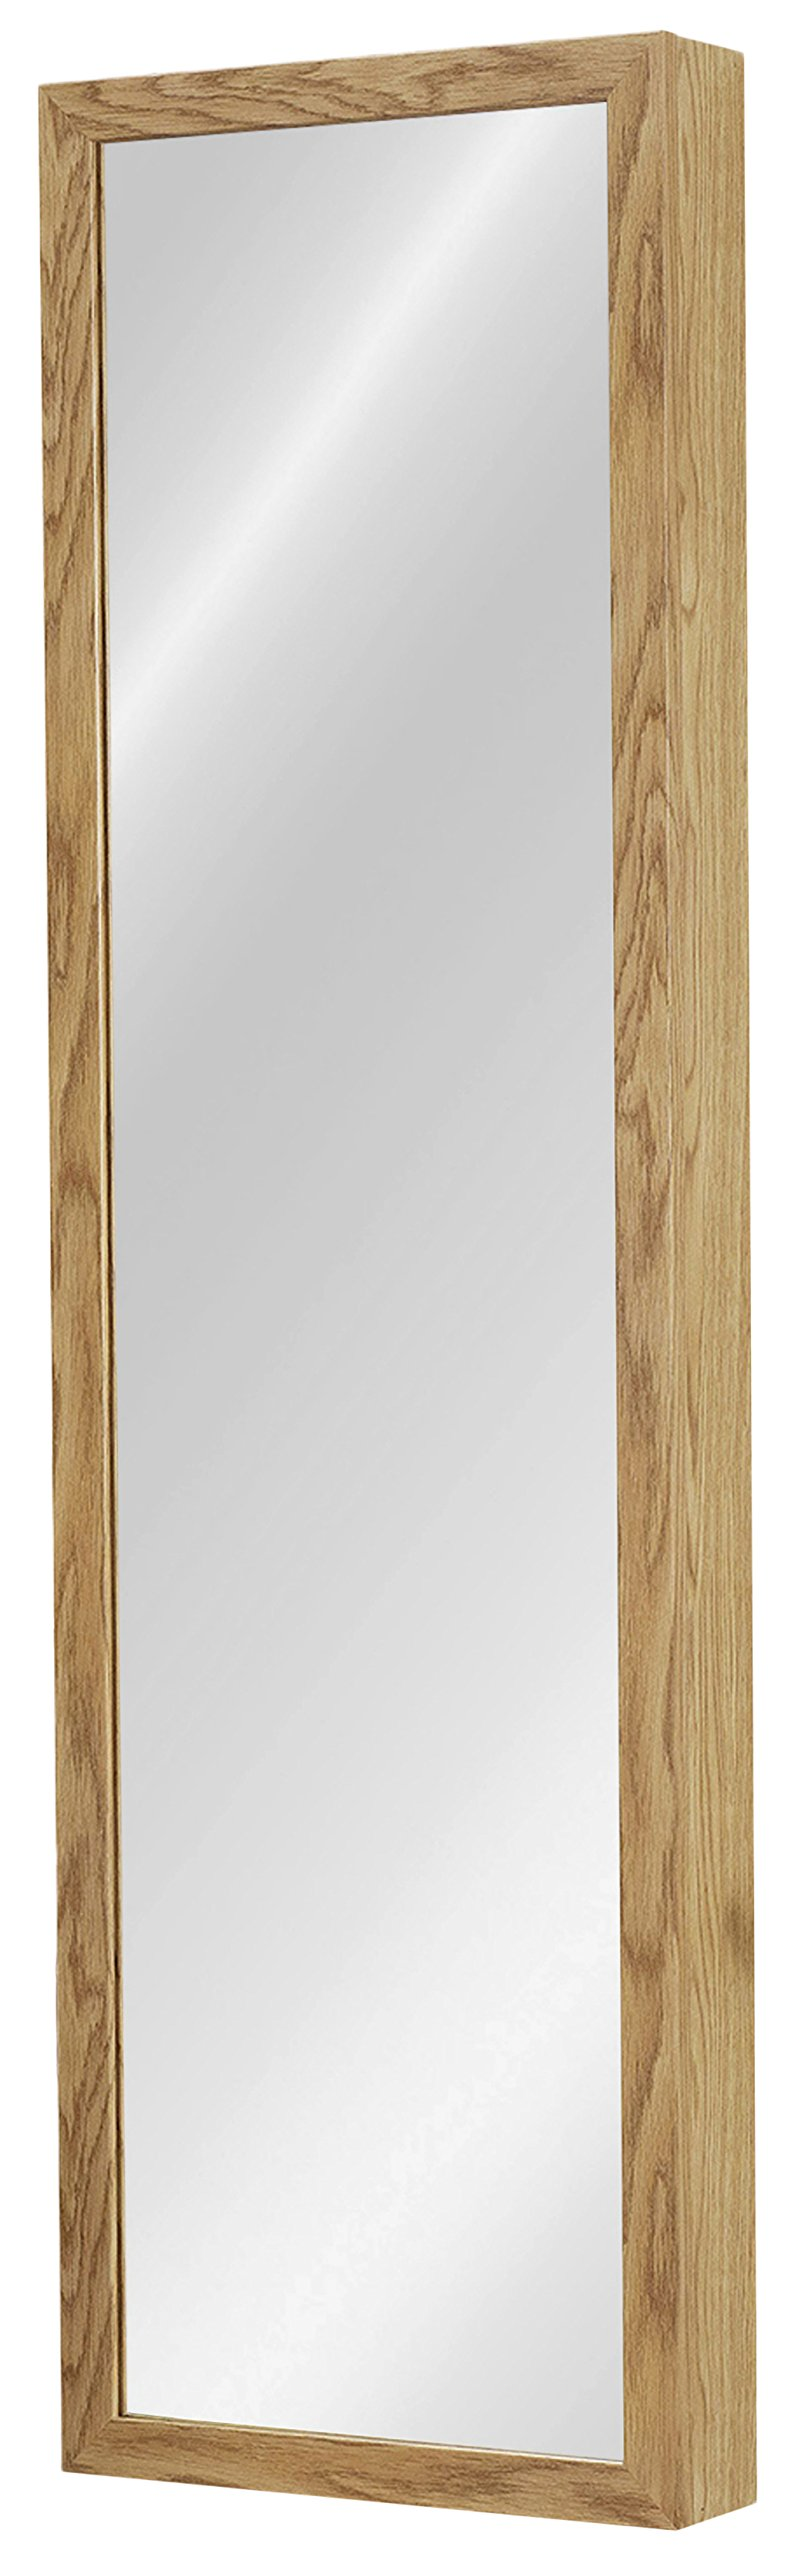 Plaza Astoria Over The Door/Wall-Mount Jewelry Armoire with Full Length Dressing Mirror and Vanity Mirror for Earrings, Necklaces and Rings, Oak